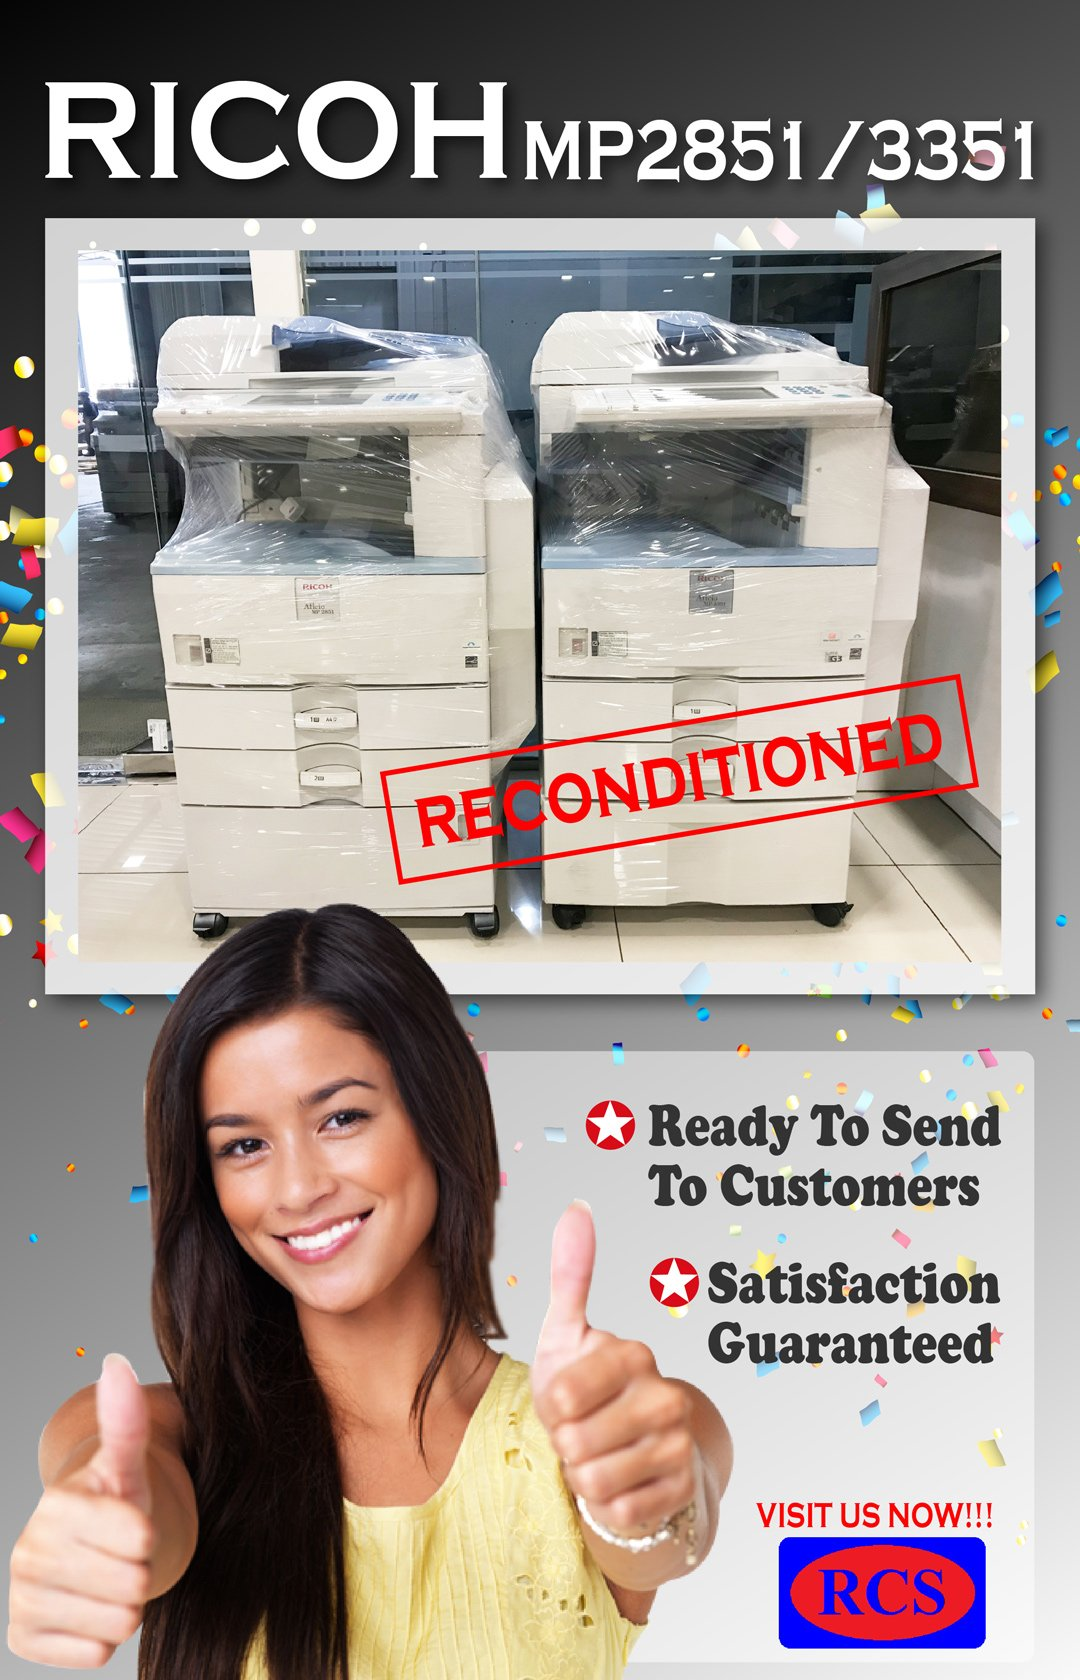 RICOH MP2851/3351 SATISFACTION GUARANTEED!! FUJI XEROX/CANON/MINOLTA RECONDITIONED COPIER WHOLESALE